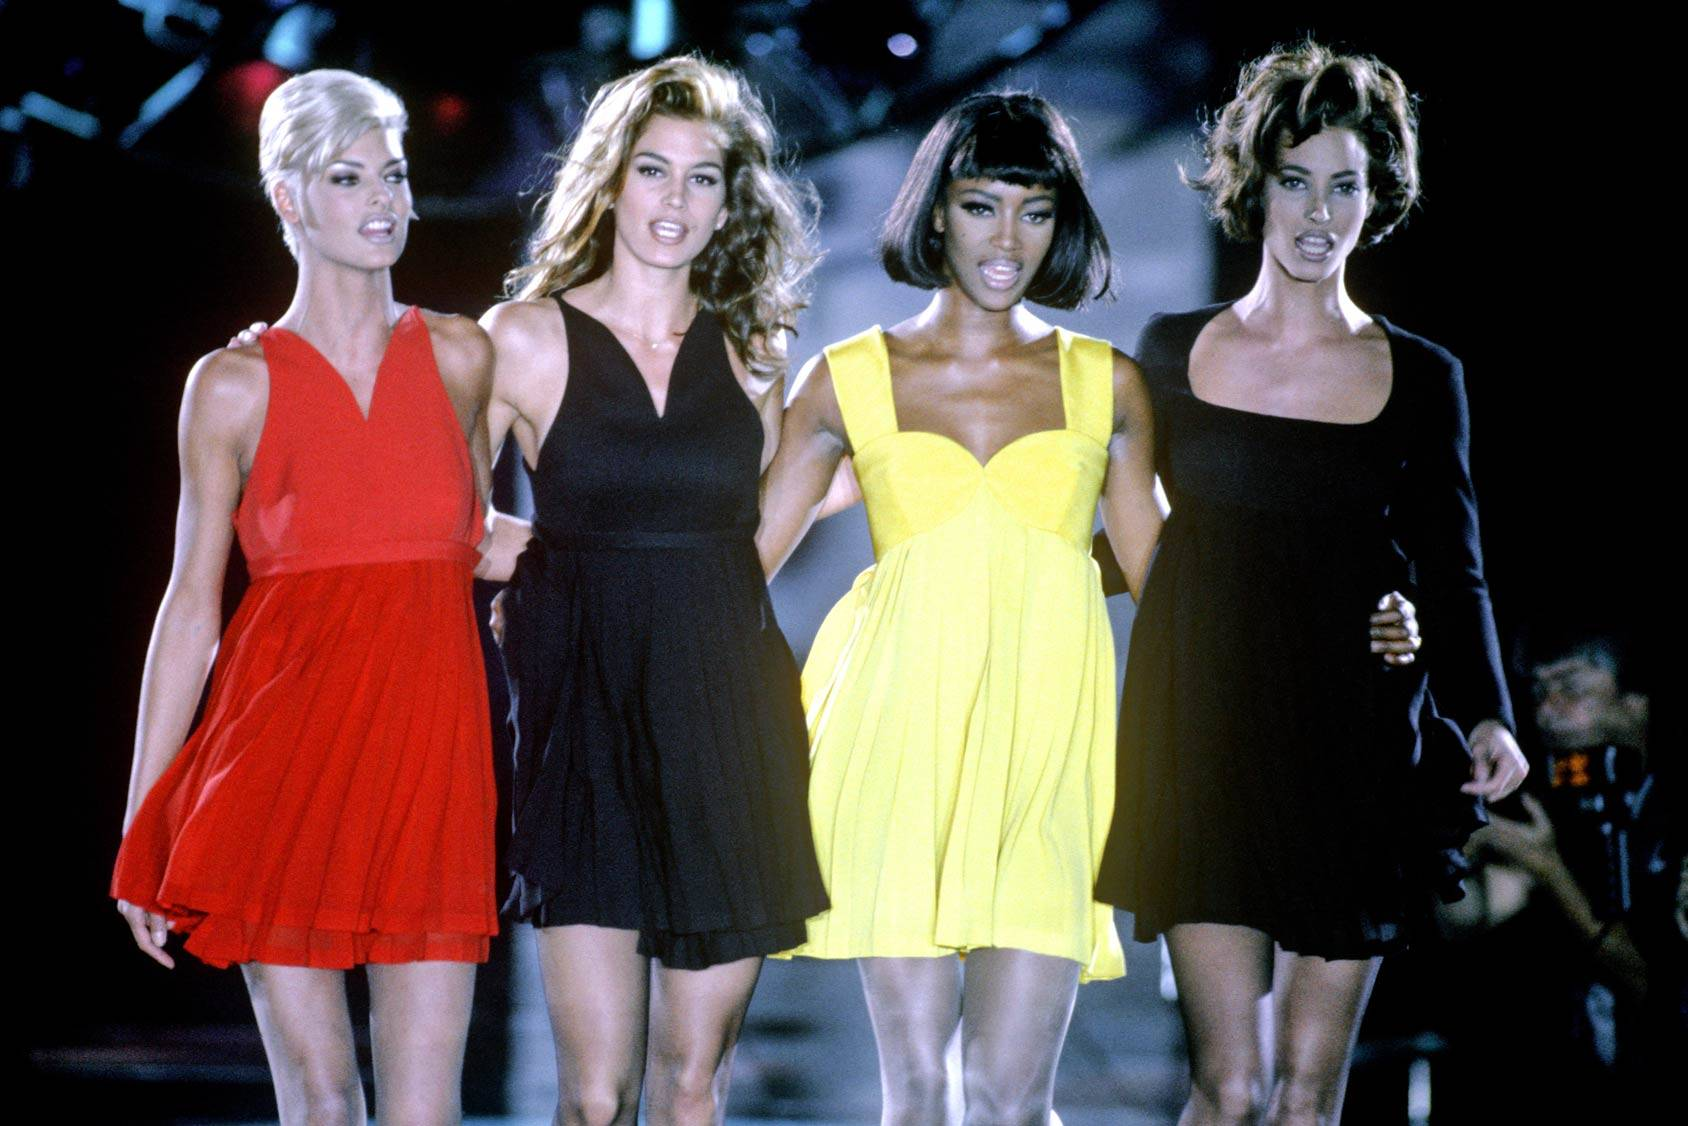 Linda Evangelista, Cindy Crawford, Naomi Campbell and Christy Turlington – the biggest supermodels of the 90s, All Over Press.